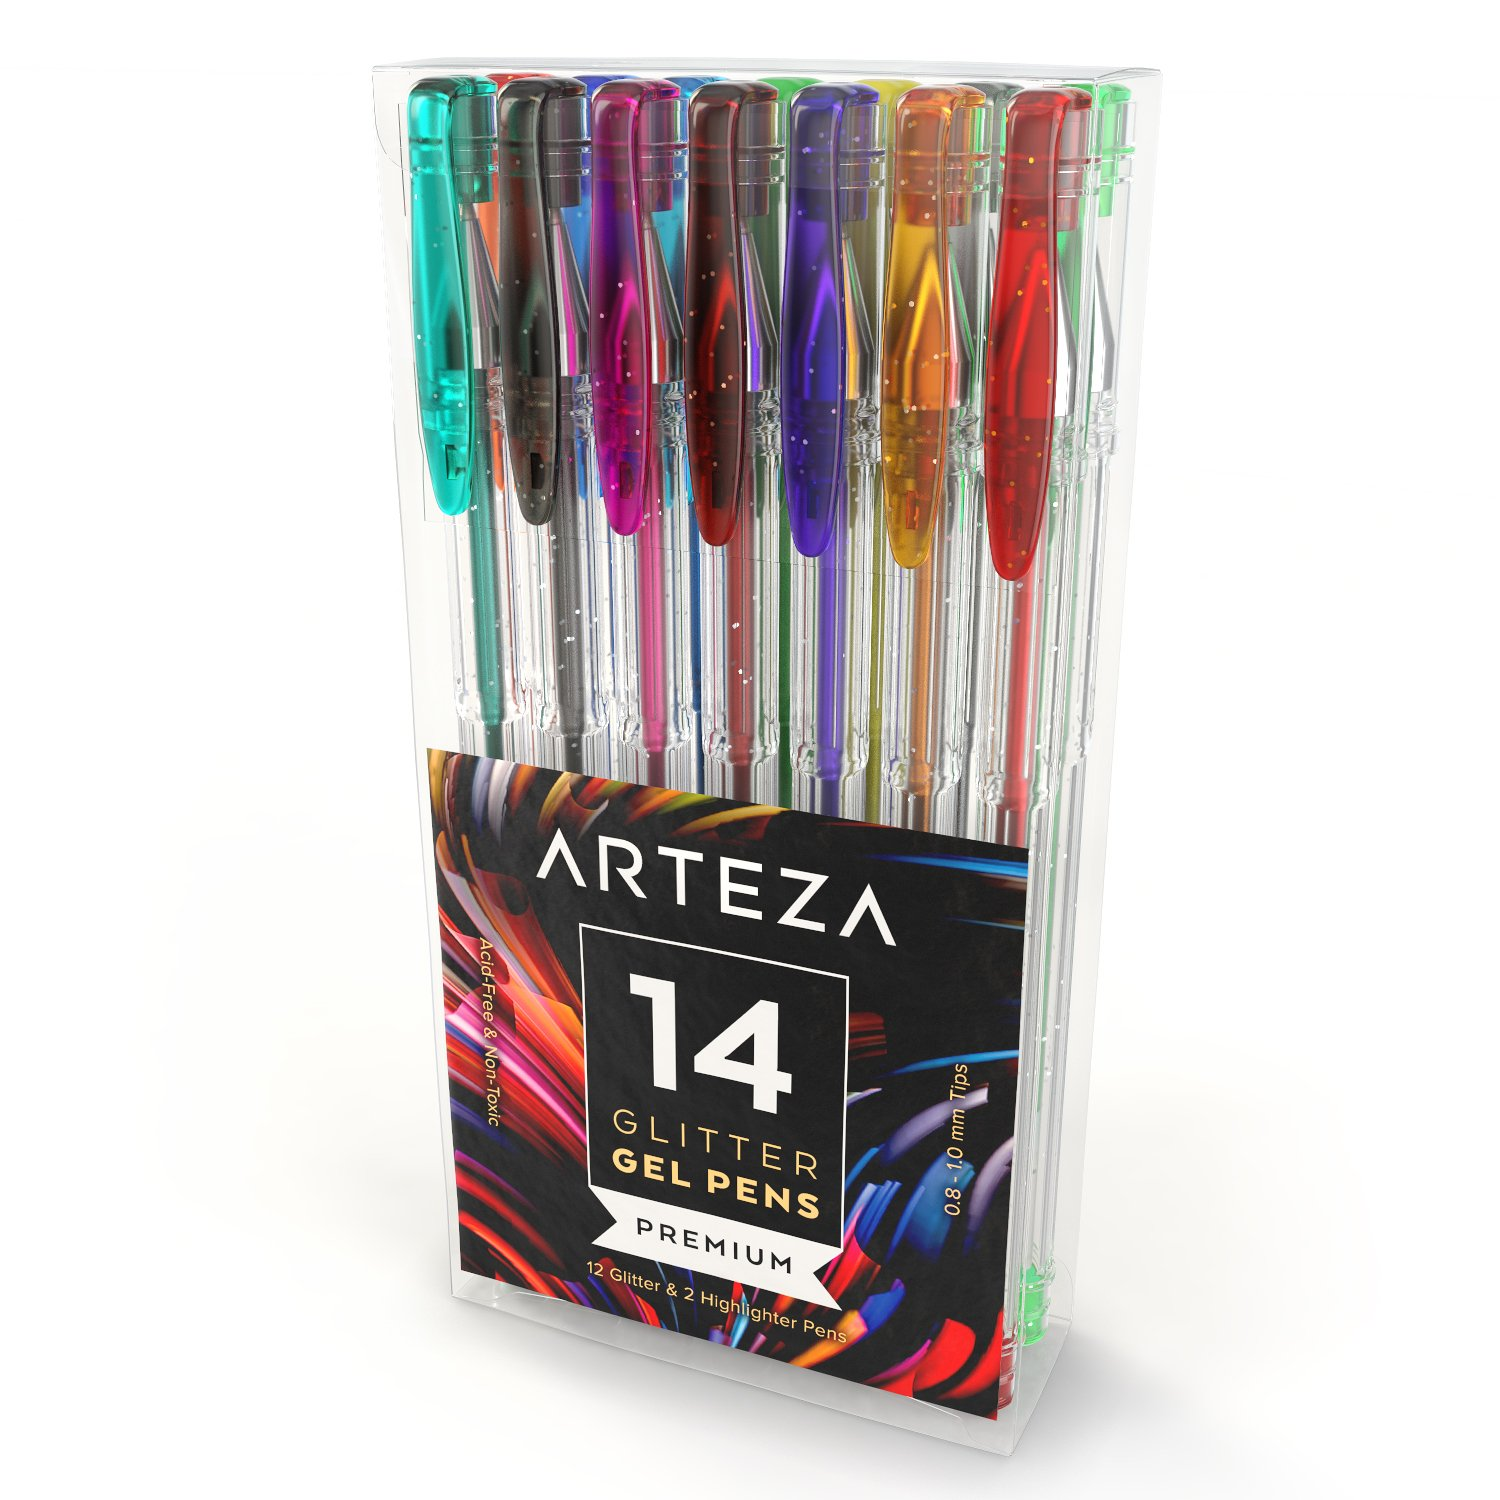 Glitter Gel Pens by Arteza, Set of 14 Superior Quality Artists Pens - Great for Coloring Books, Scrapbooks, Greeting Cards & Journals - Acid Free, Non-Toxic - 100% Satisfaction Guarantee